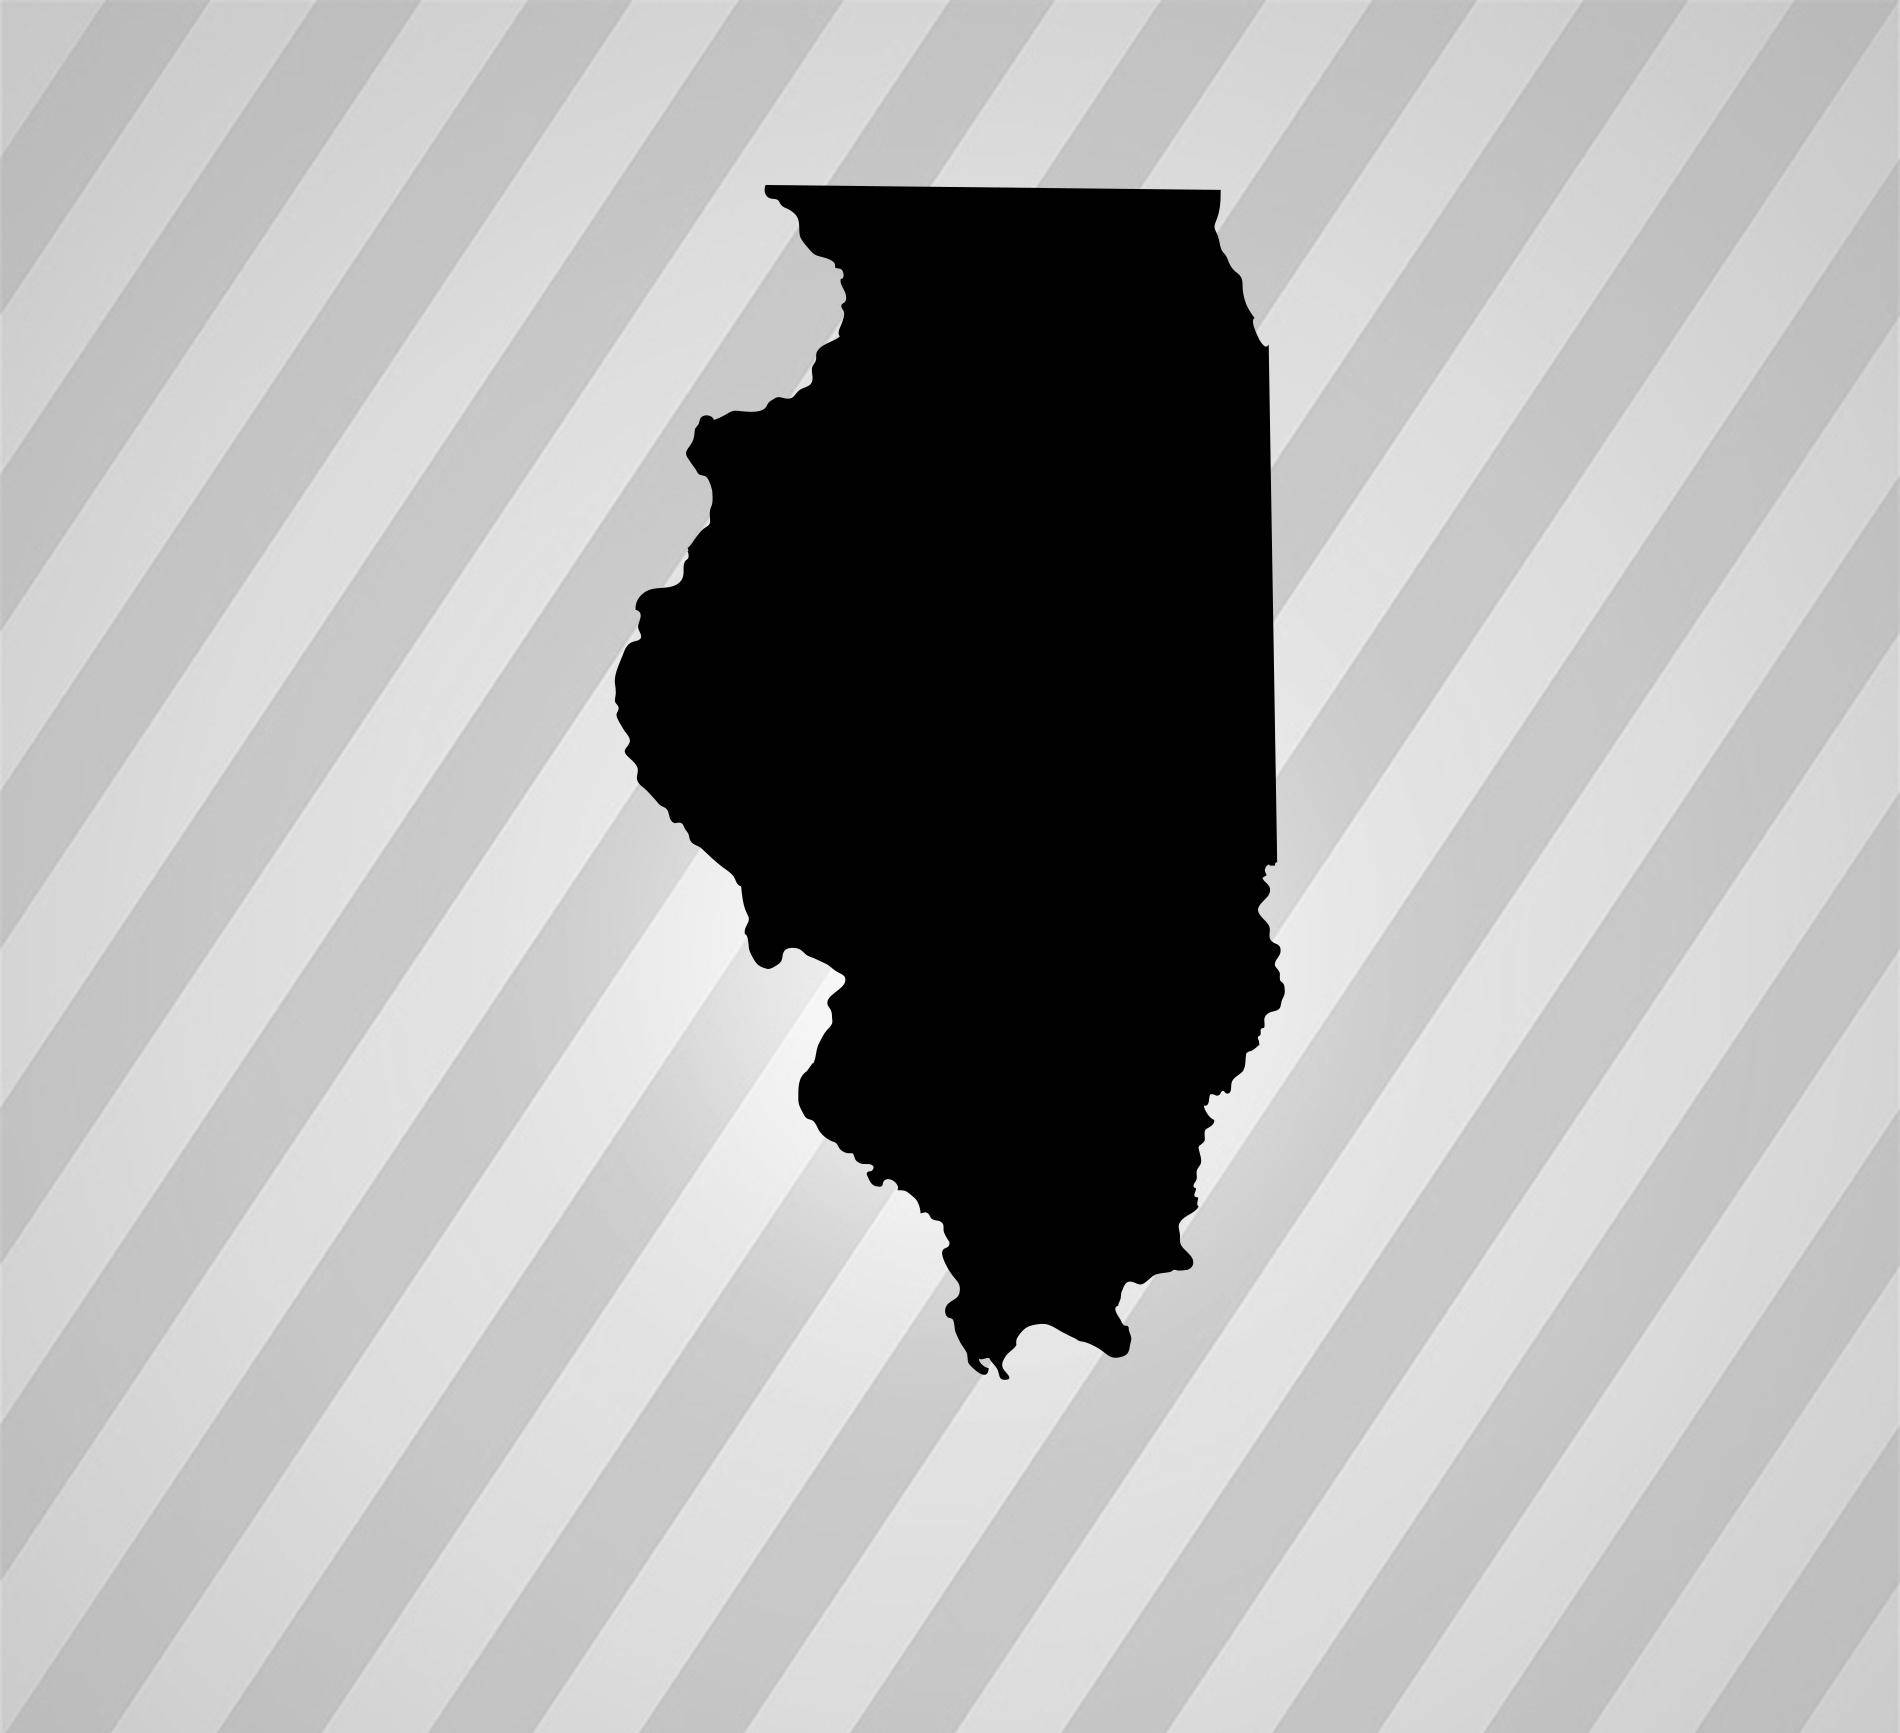 illinois silhouette illinois svg png dxf state home instant download illinois silhouette